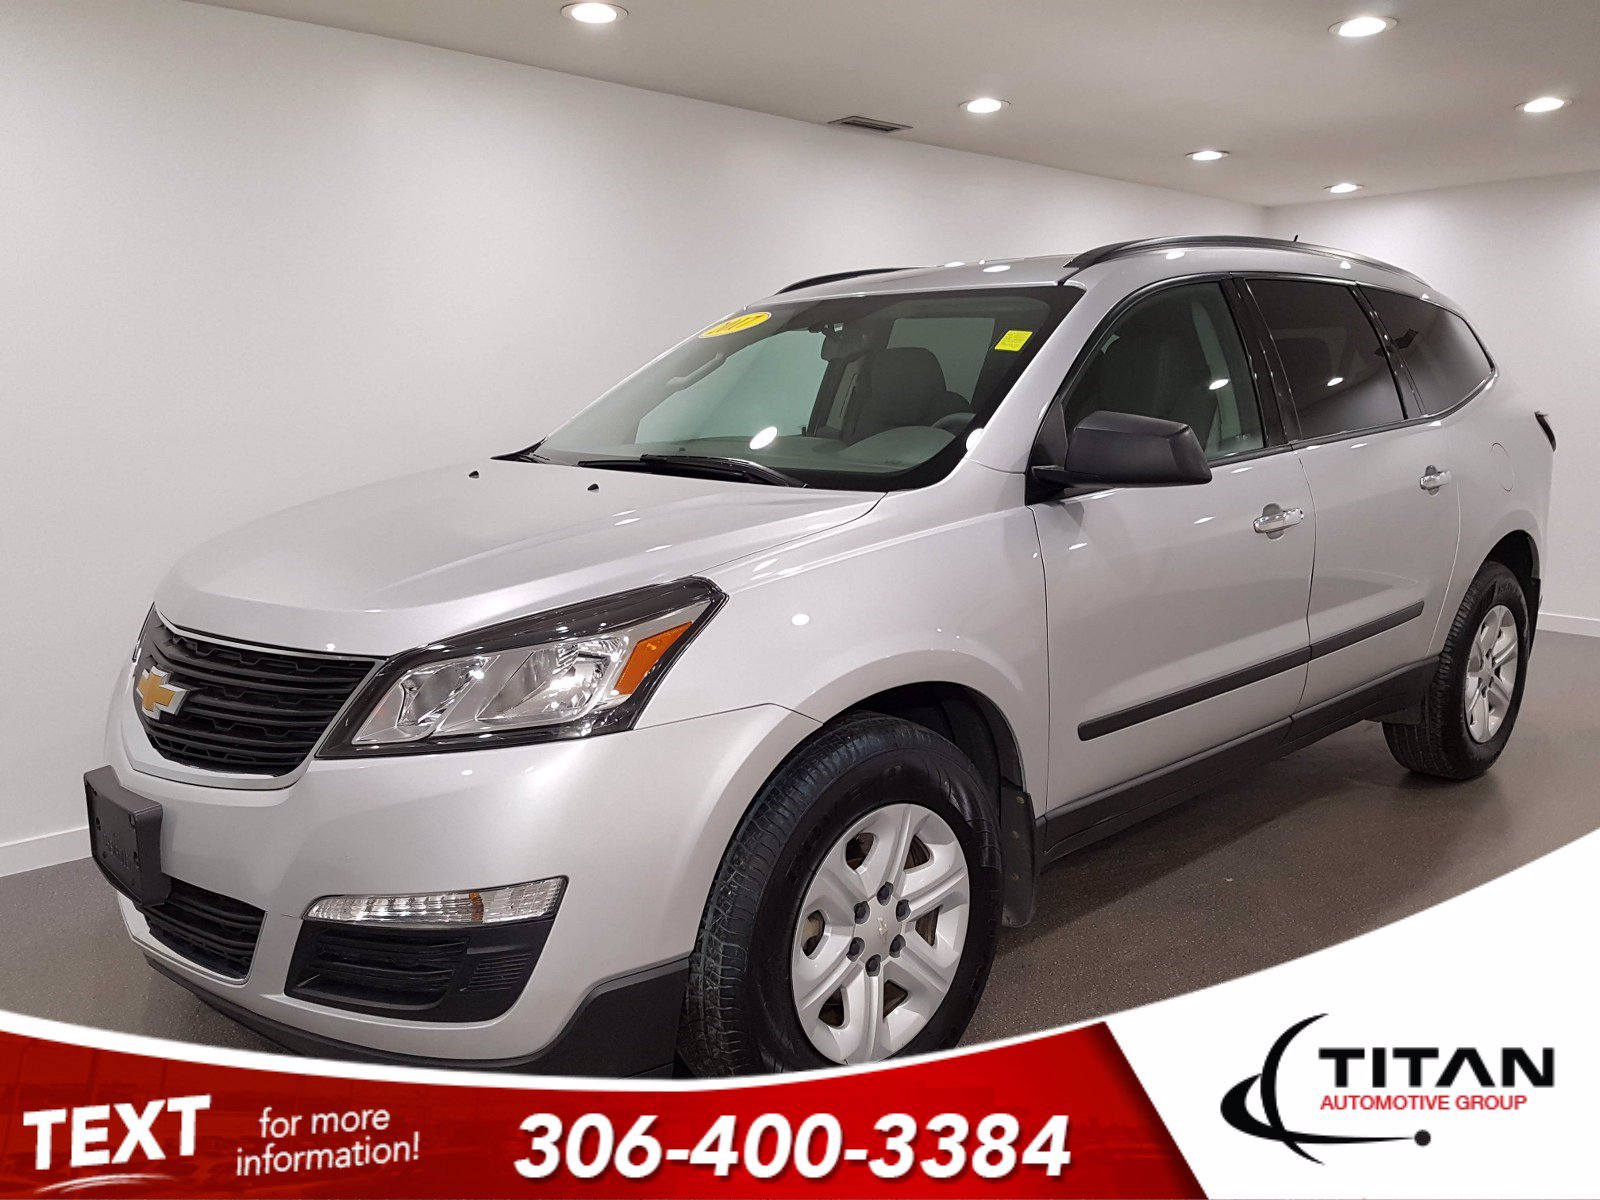 Pre-Owned 2017 Chevrolet Traverse LS AWD V6 | 8 Pass | Bluetooth | Back-up Camera | Local